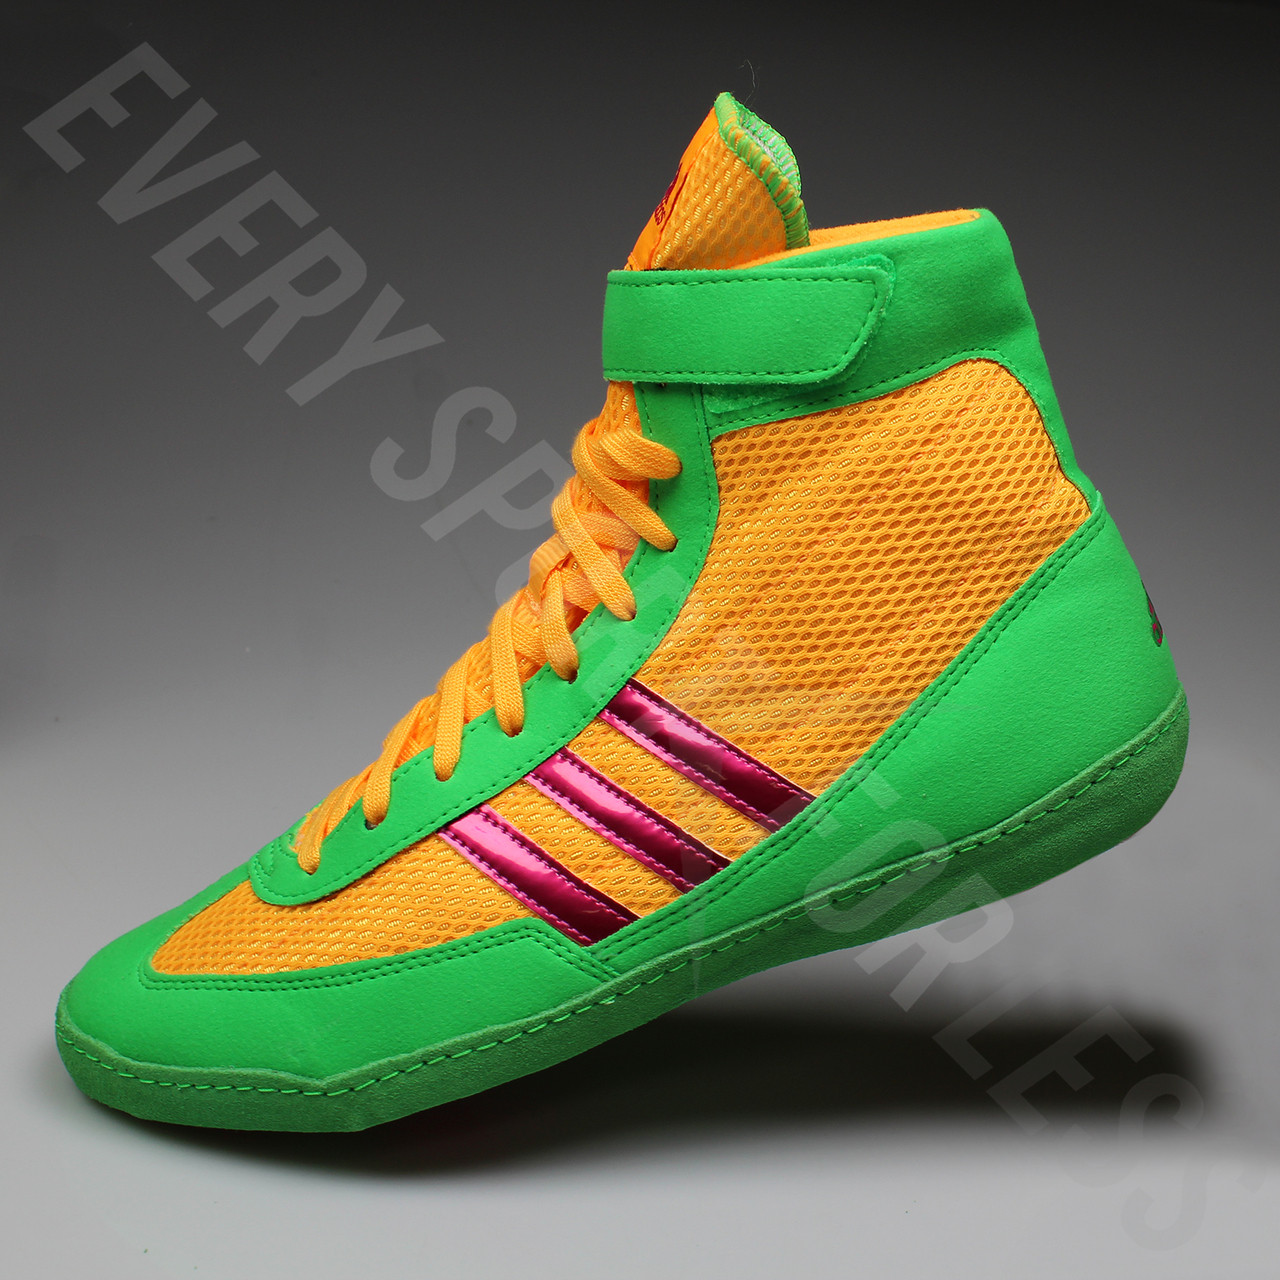 Adidas Combat Speed 4 Wrestling Shoes Solar GoldPink